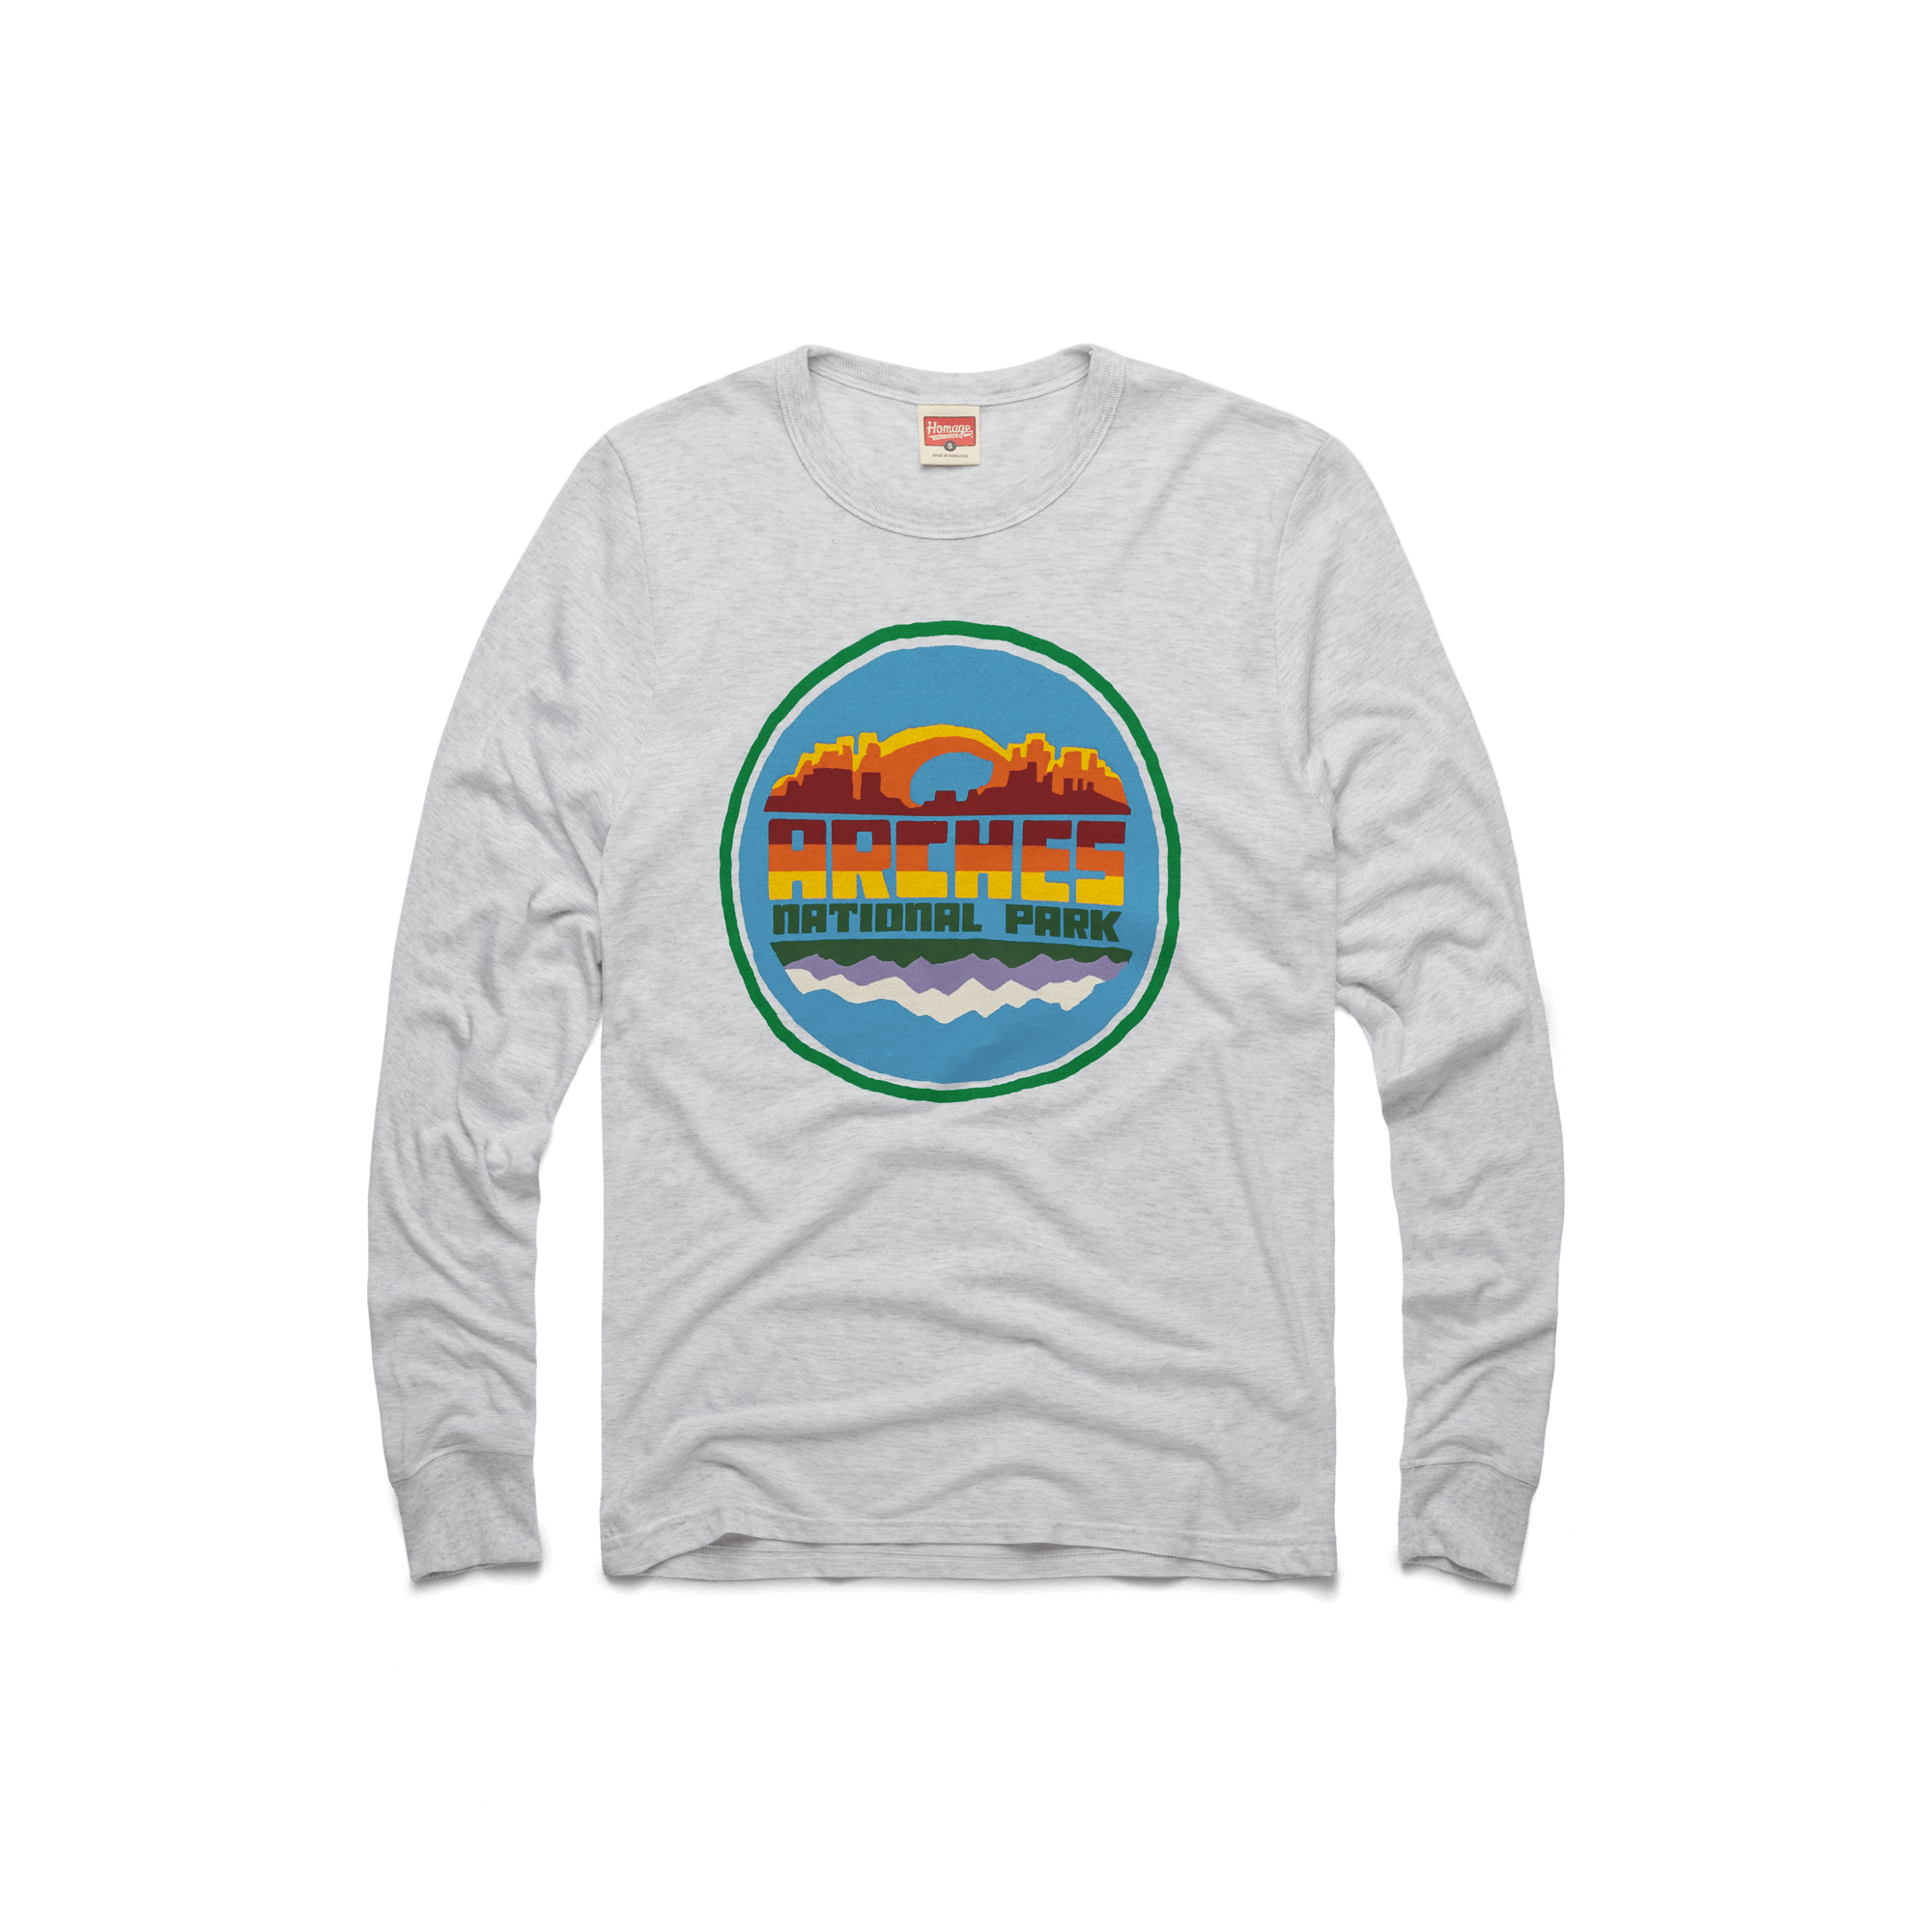 a6a3c21eb00 Retro HOMAGE Outdoors Camping Hiking And National Parks Apparel